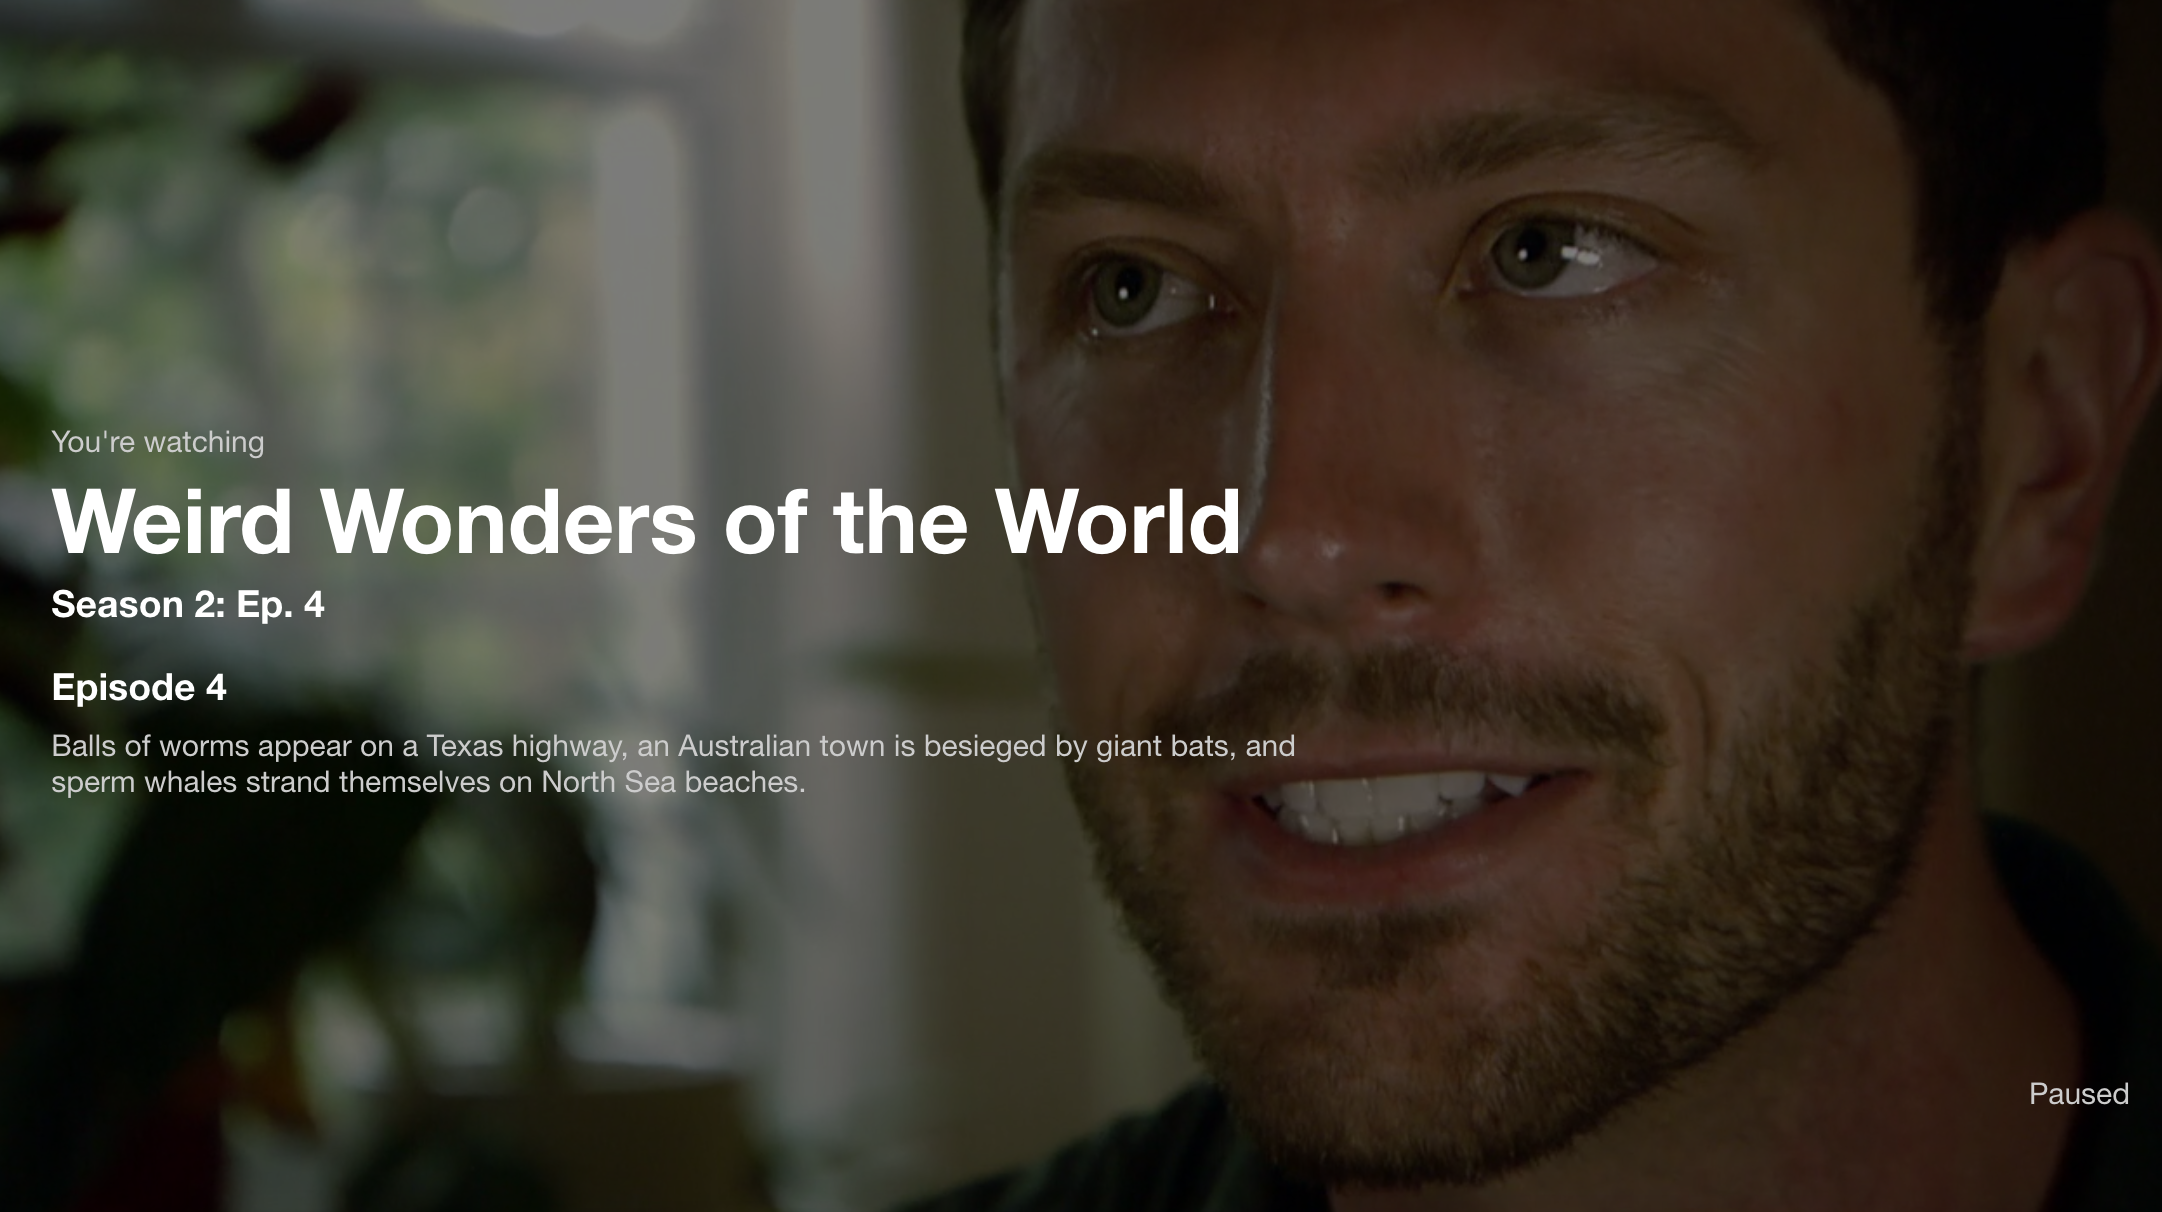 Talking about several fun bug stories on BBC's Weird Wonders of the World! Check it out on  Netlfix: goo.gl/GY1TZi